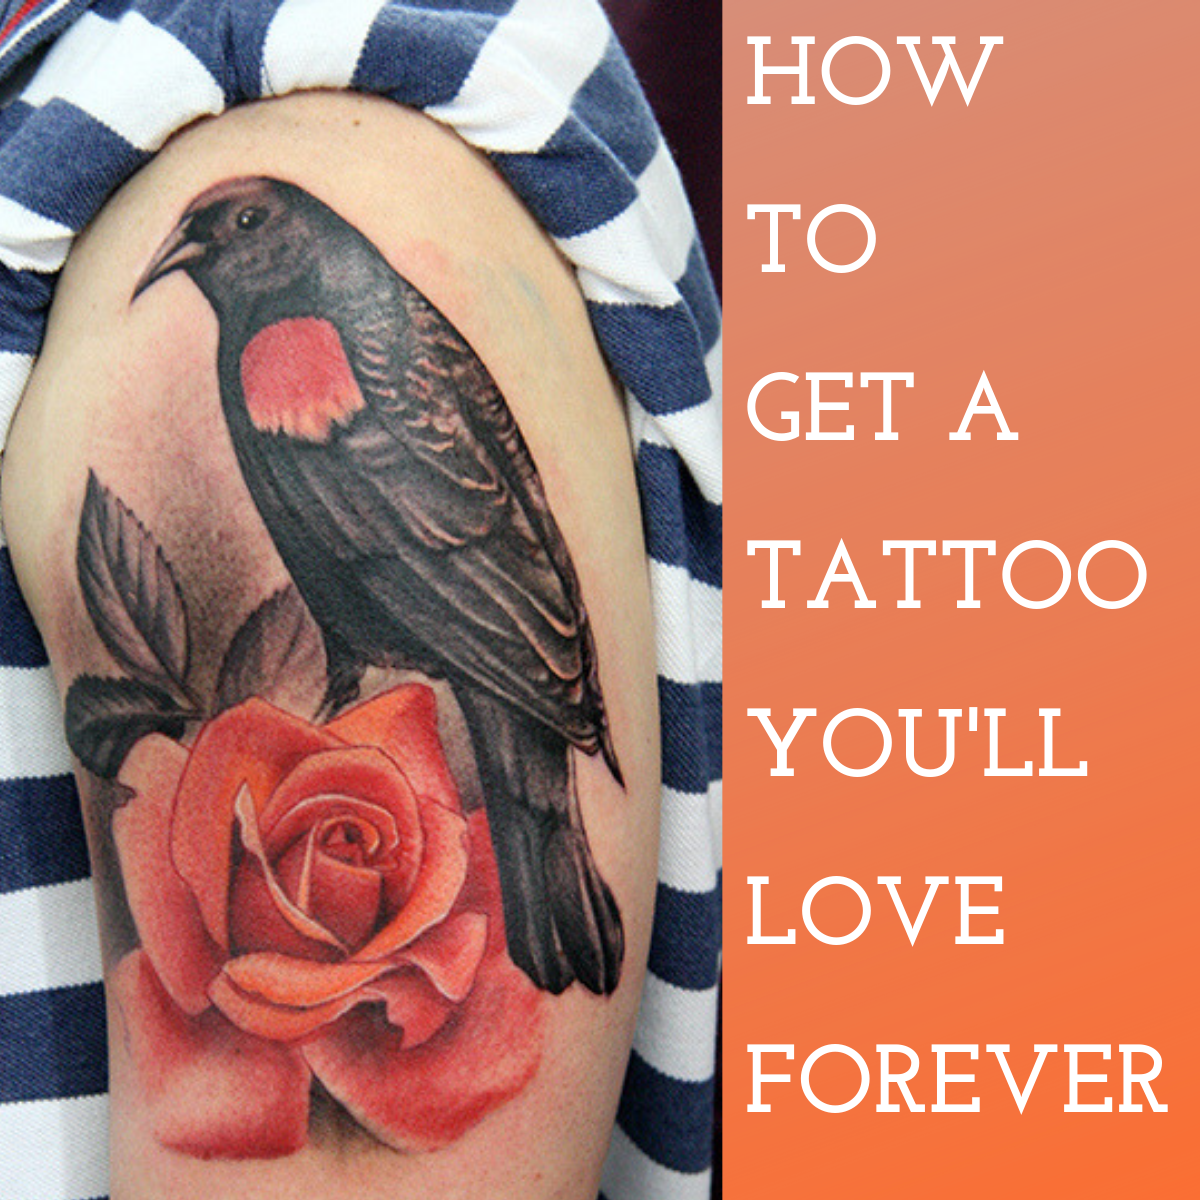 A Tattoo Artist's Tips for Getting a Tattoo You'll Love Forever